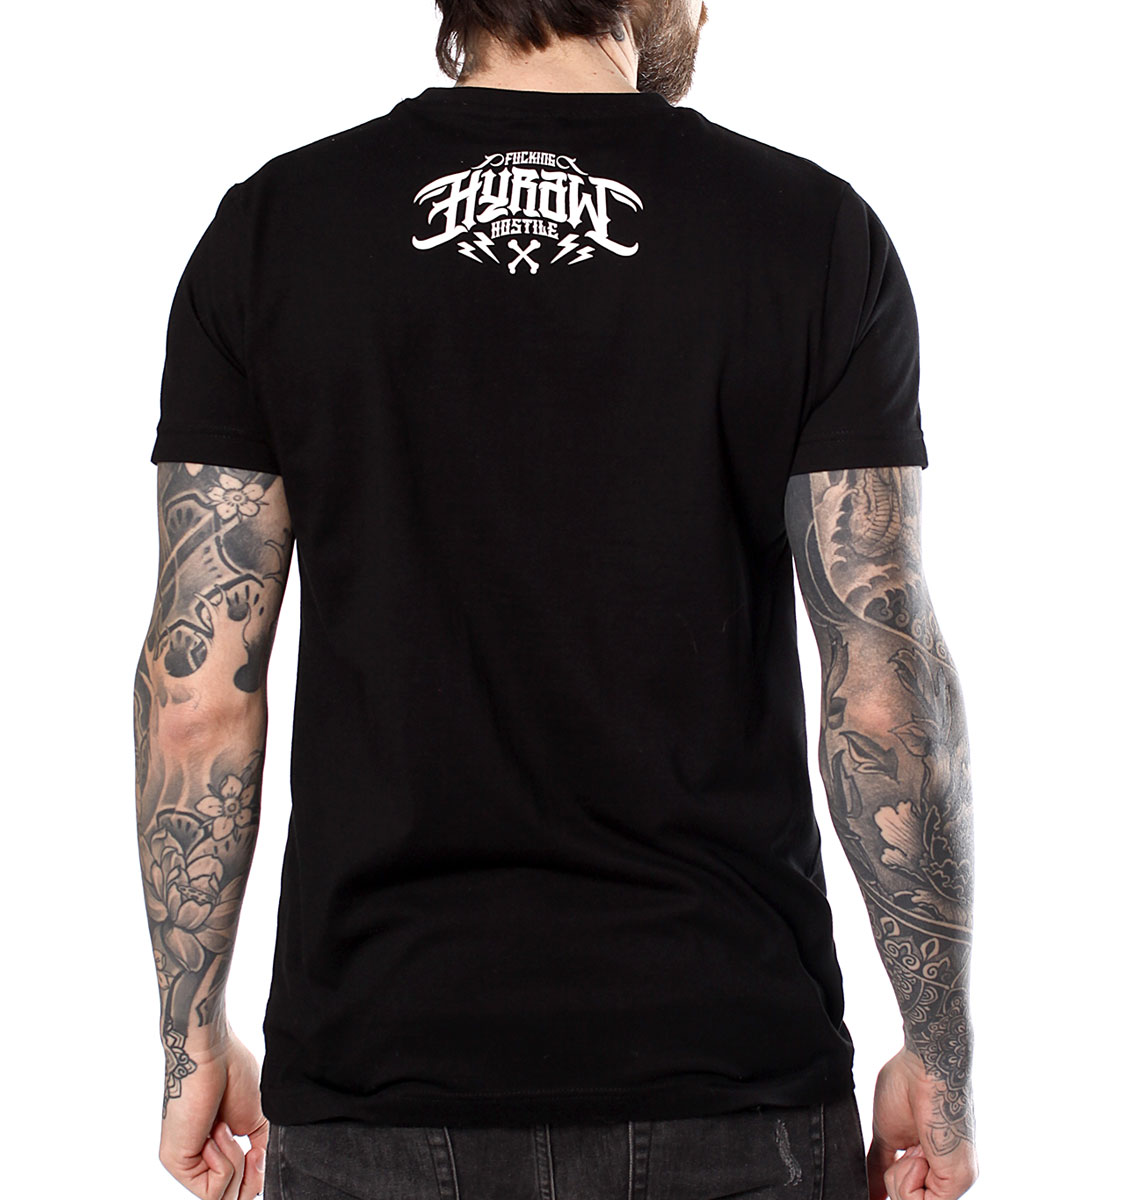 32b6145f9 T-SHIRT HOMME FROM THE DEAD